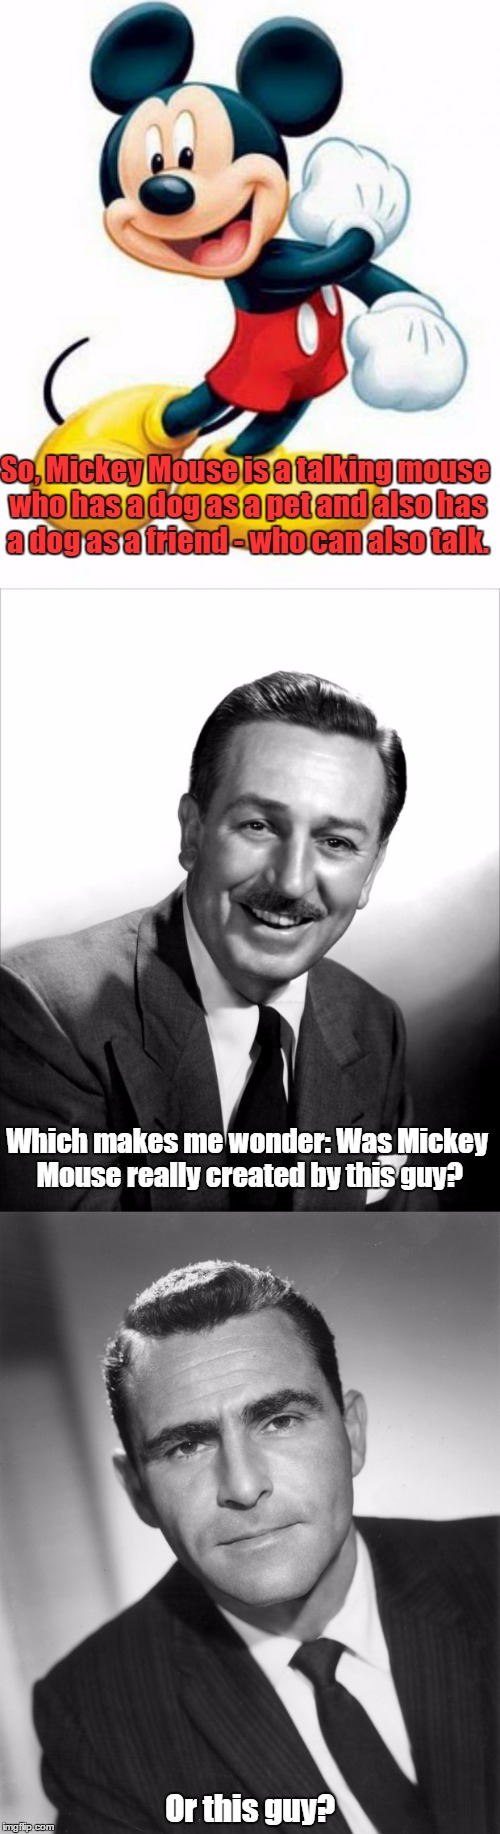 "Considering this, I can't help but think that Mickey Mouse has a ""Twilight Zone"" feel 